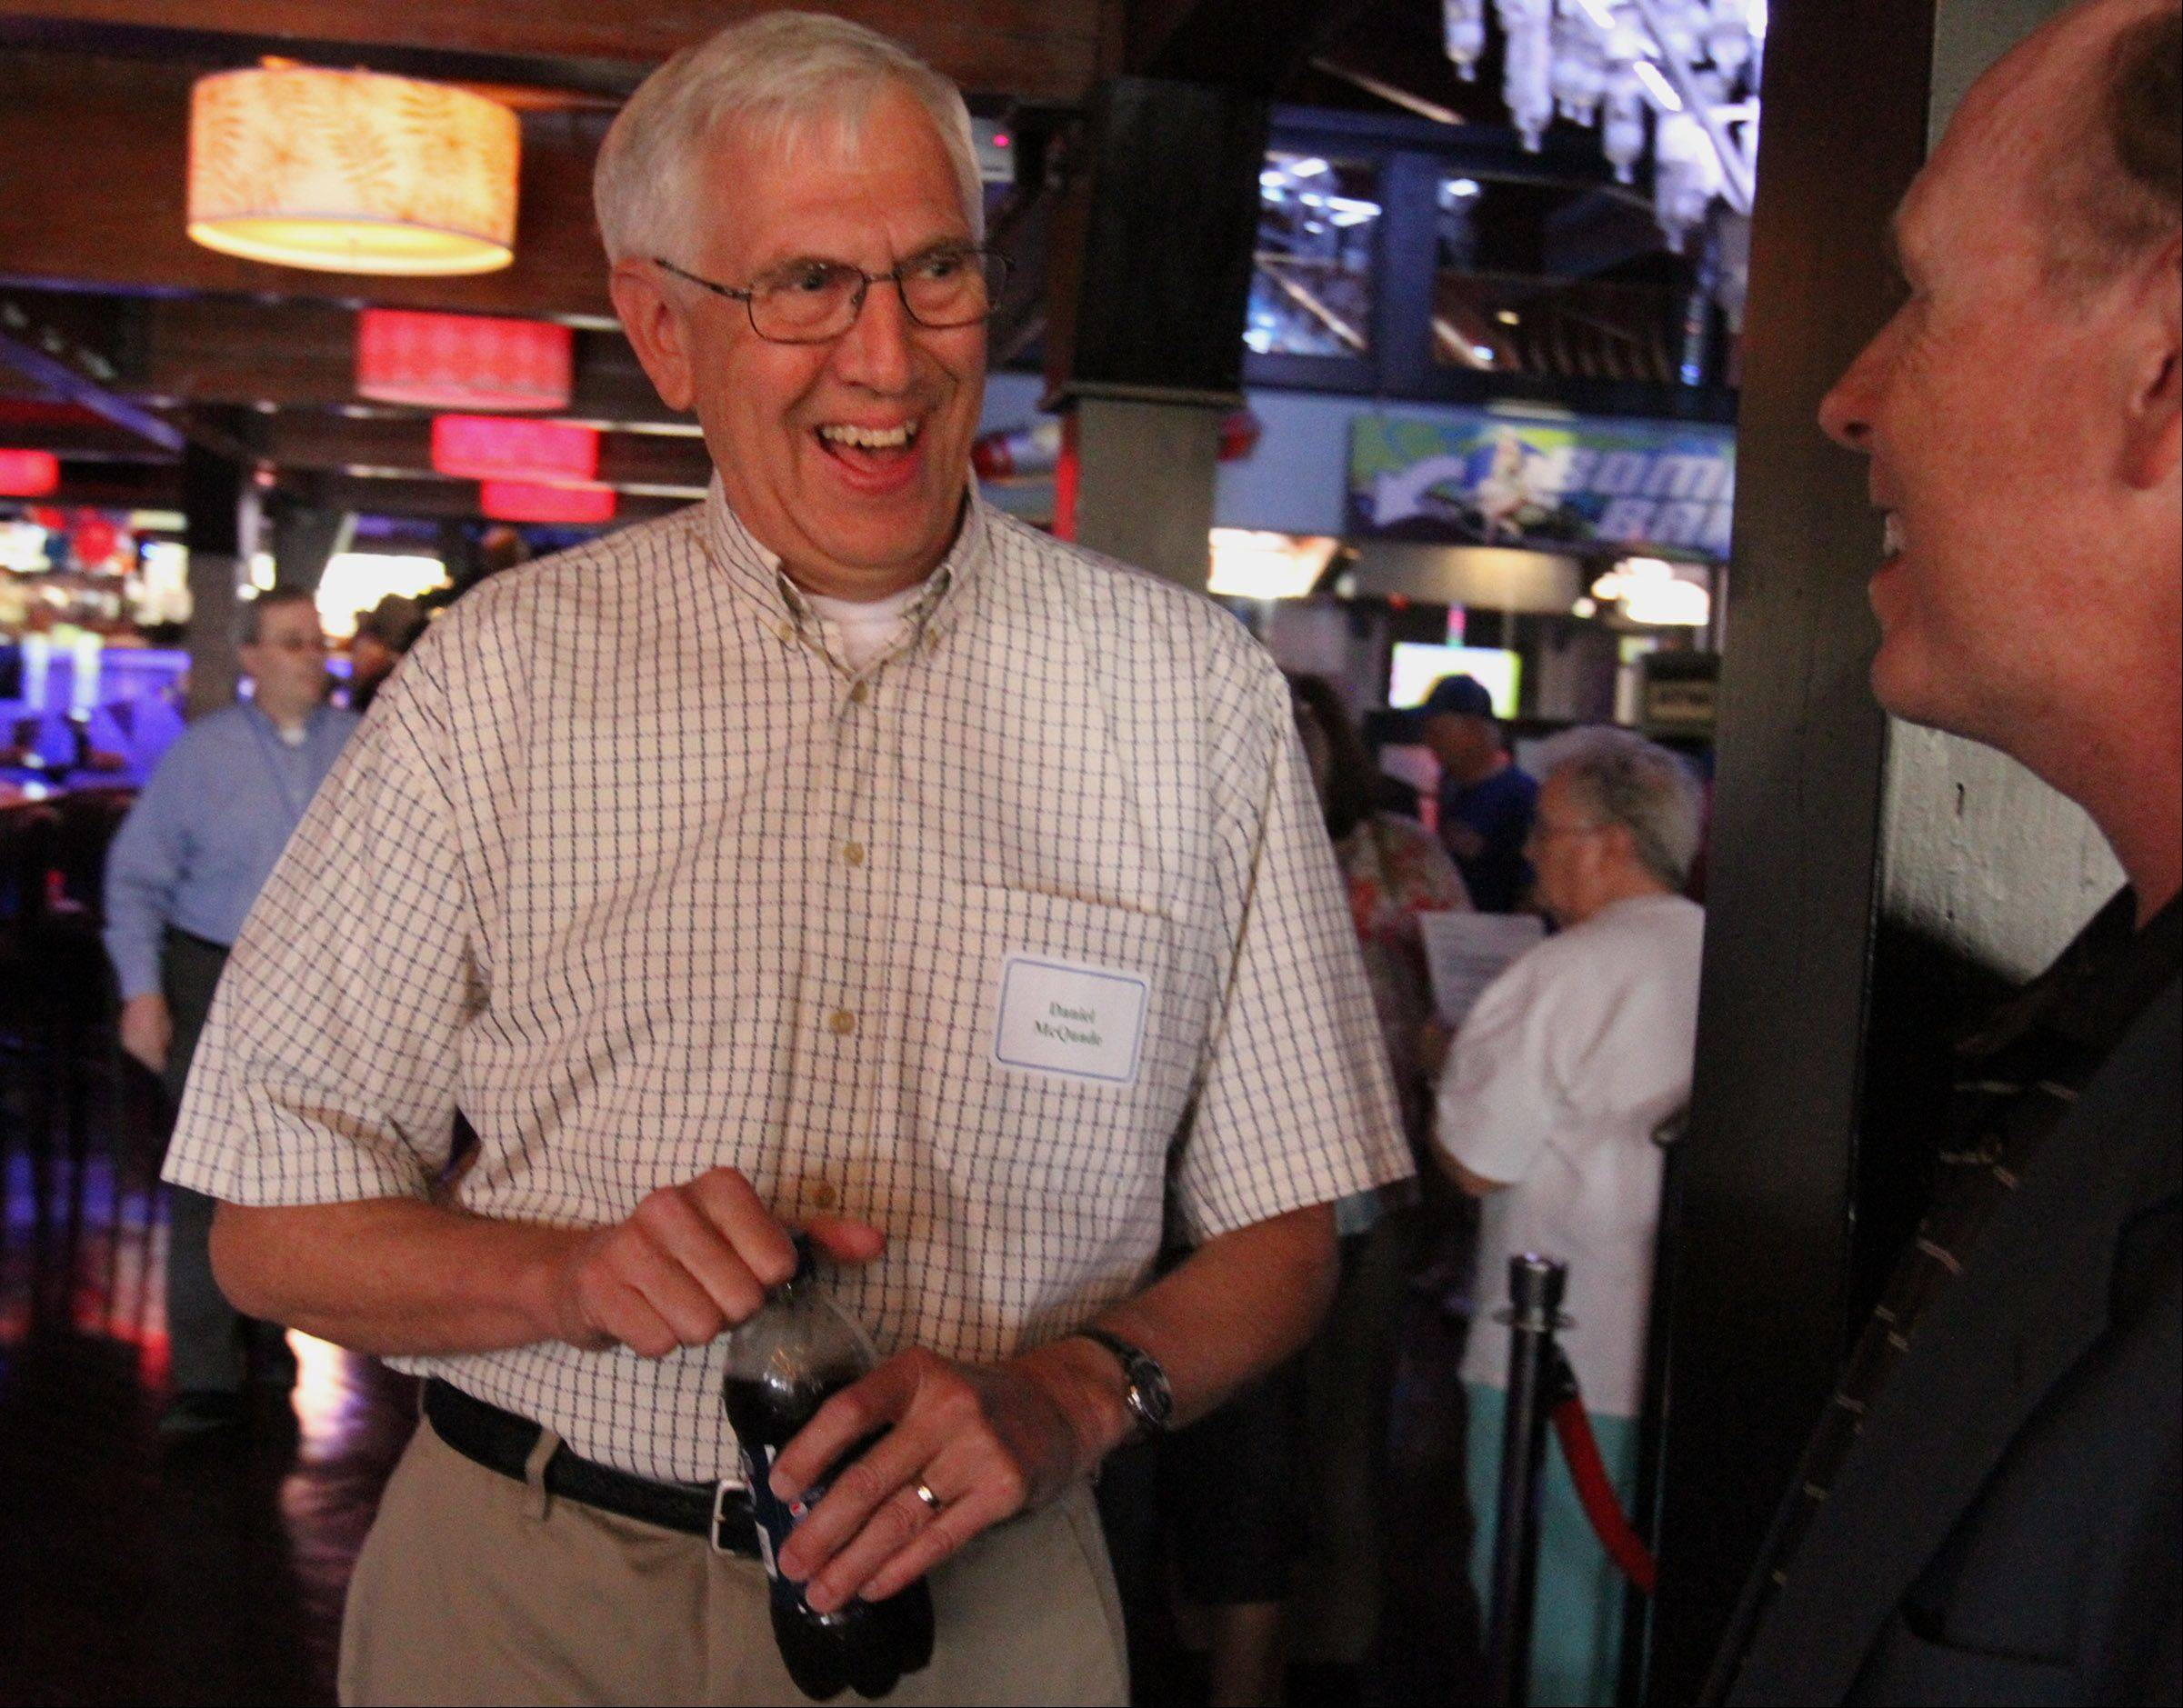 Daniel McQuade of Schaumburg talks with at Daily Herald Cubs writer Bruce Miles at the Daily Herald Total Access event celebrating Ron Santo's life at Drink in Schaumburg on Thursday.